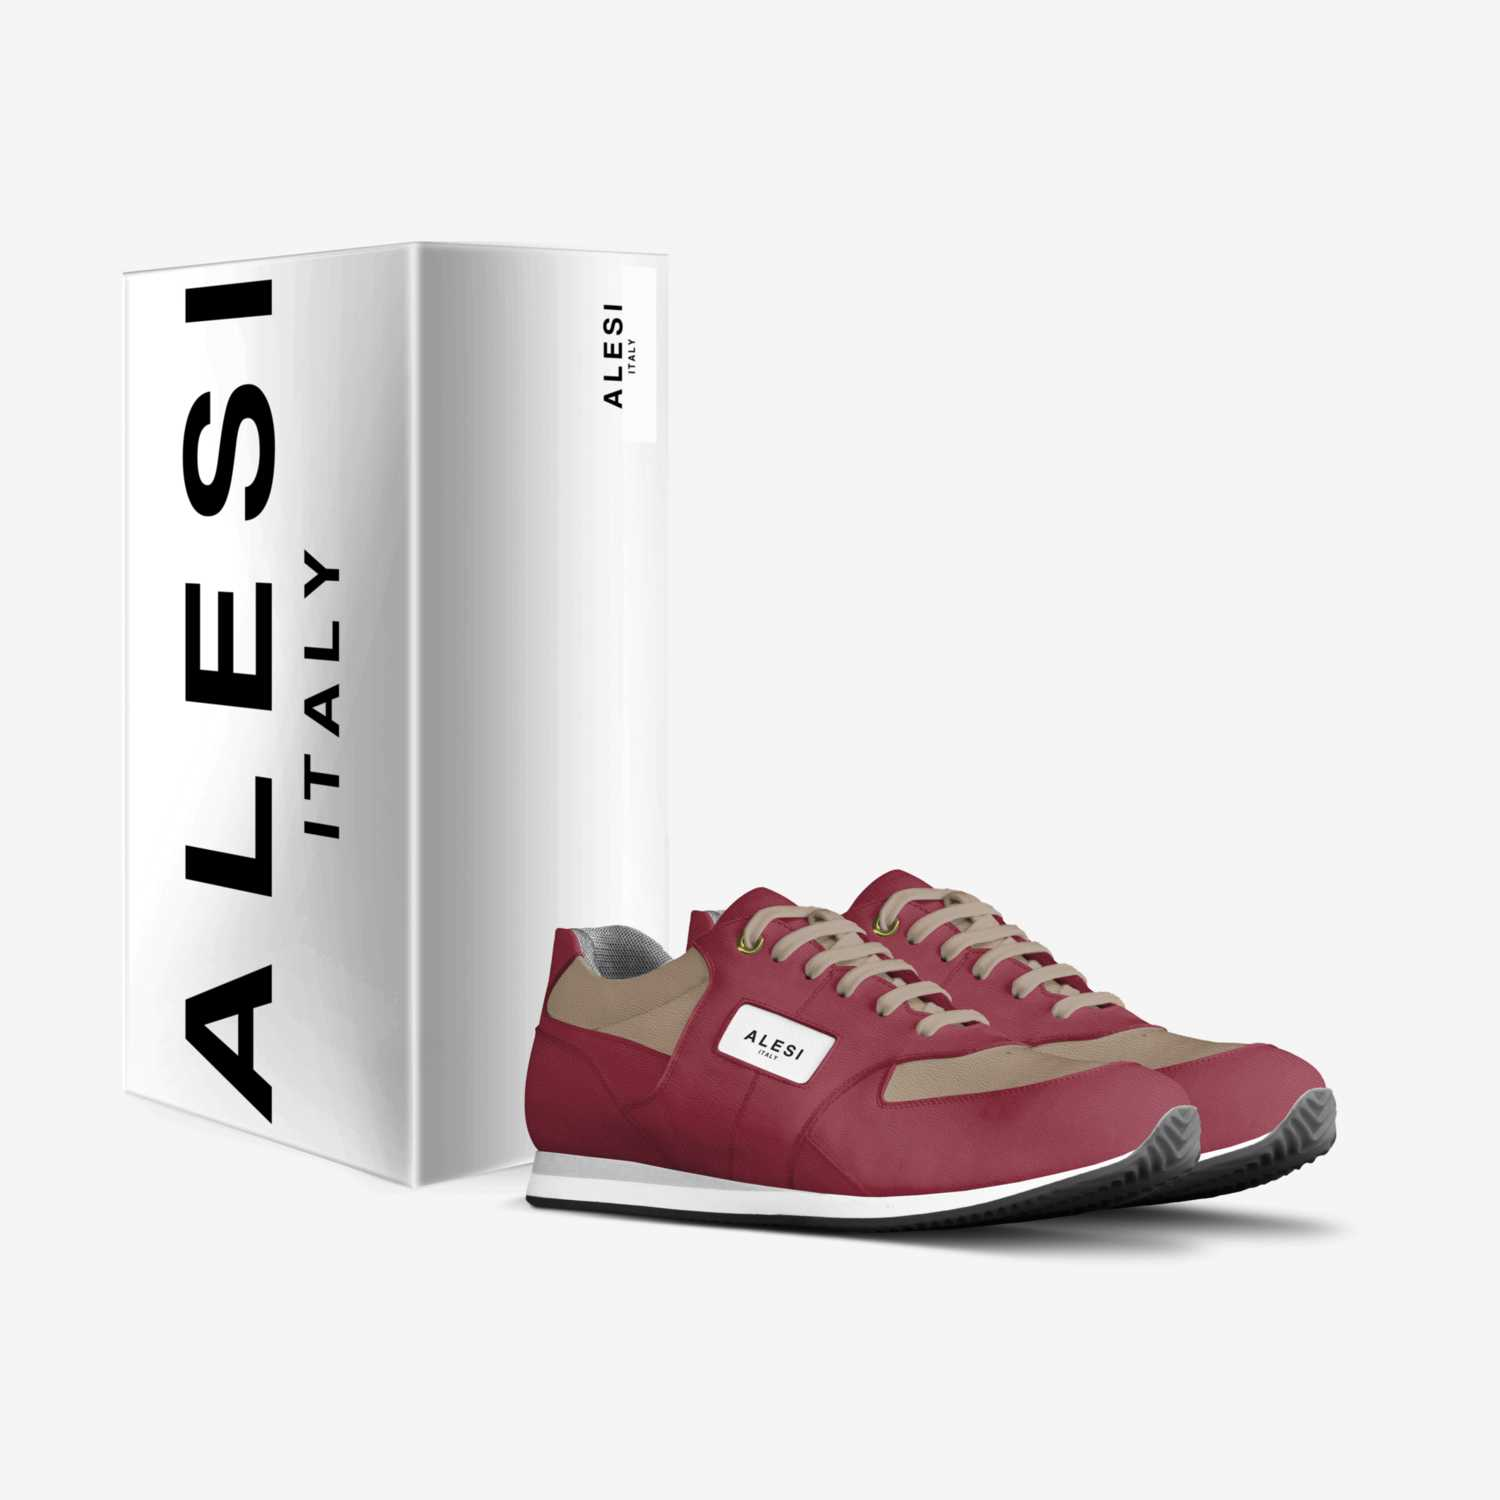 Alesi Runner custom made in Italy shoes by Lonanthony Parker | Box view